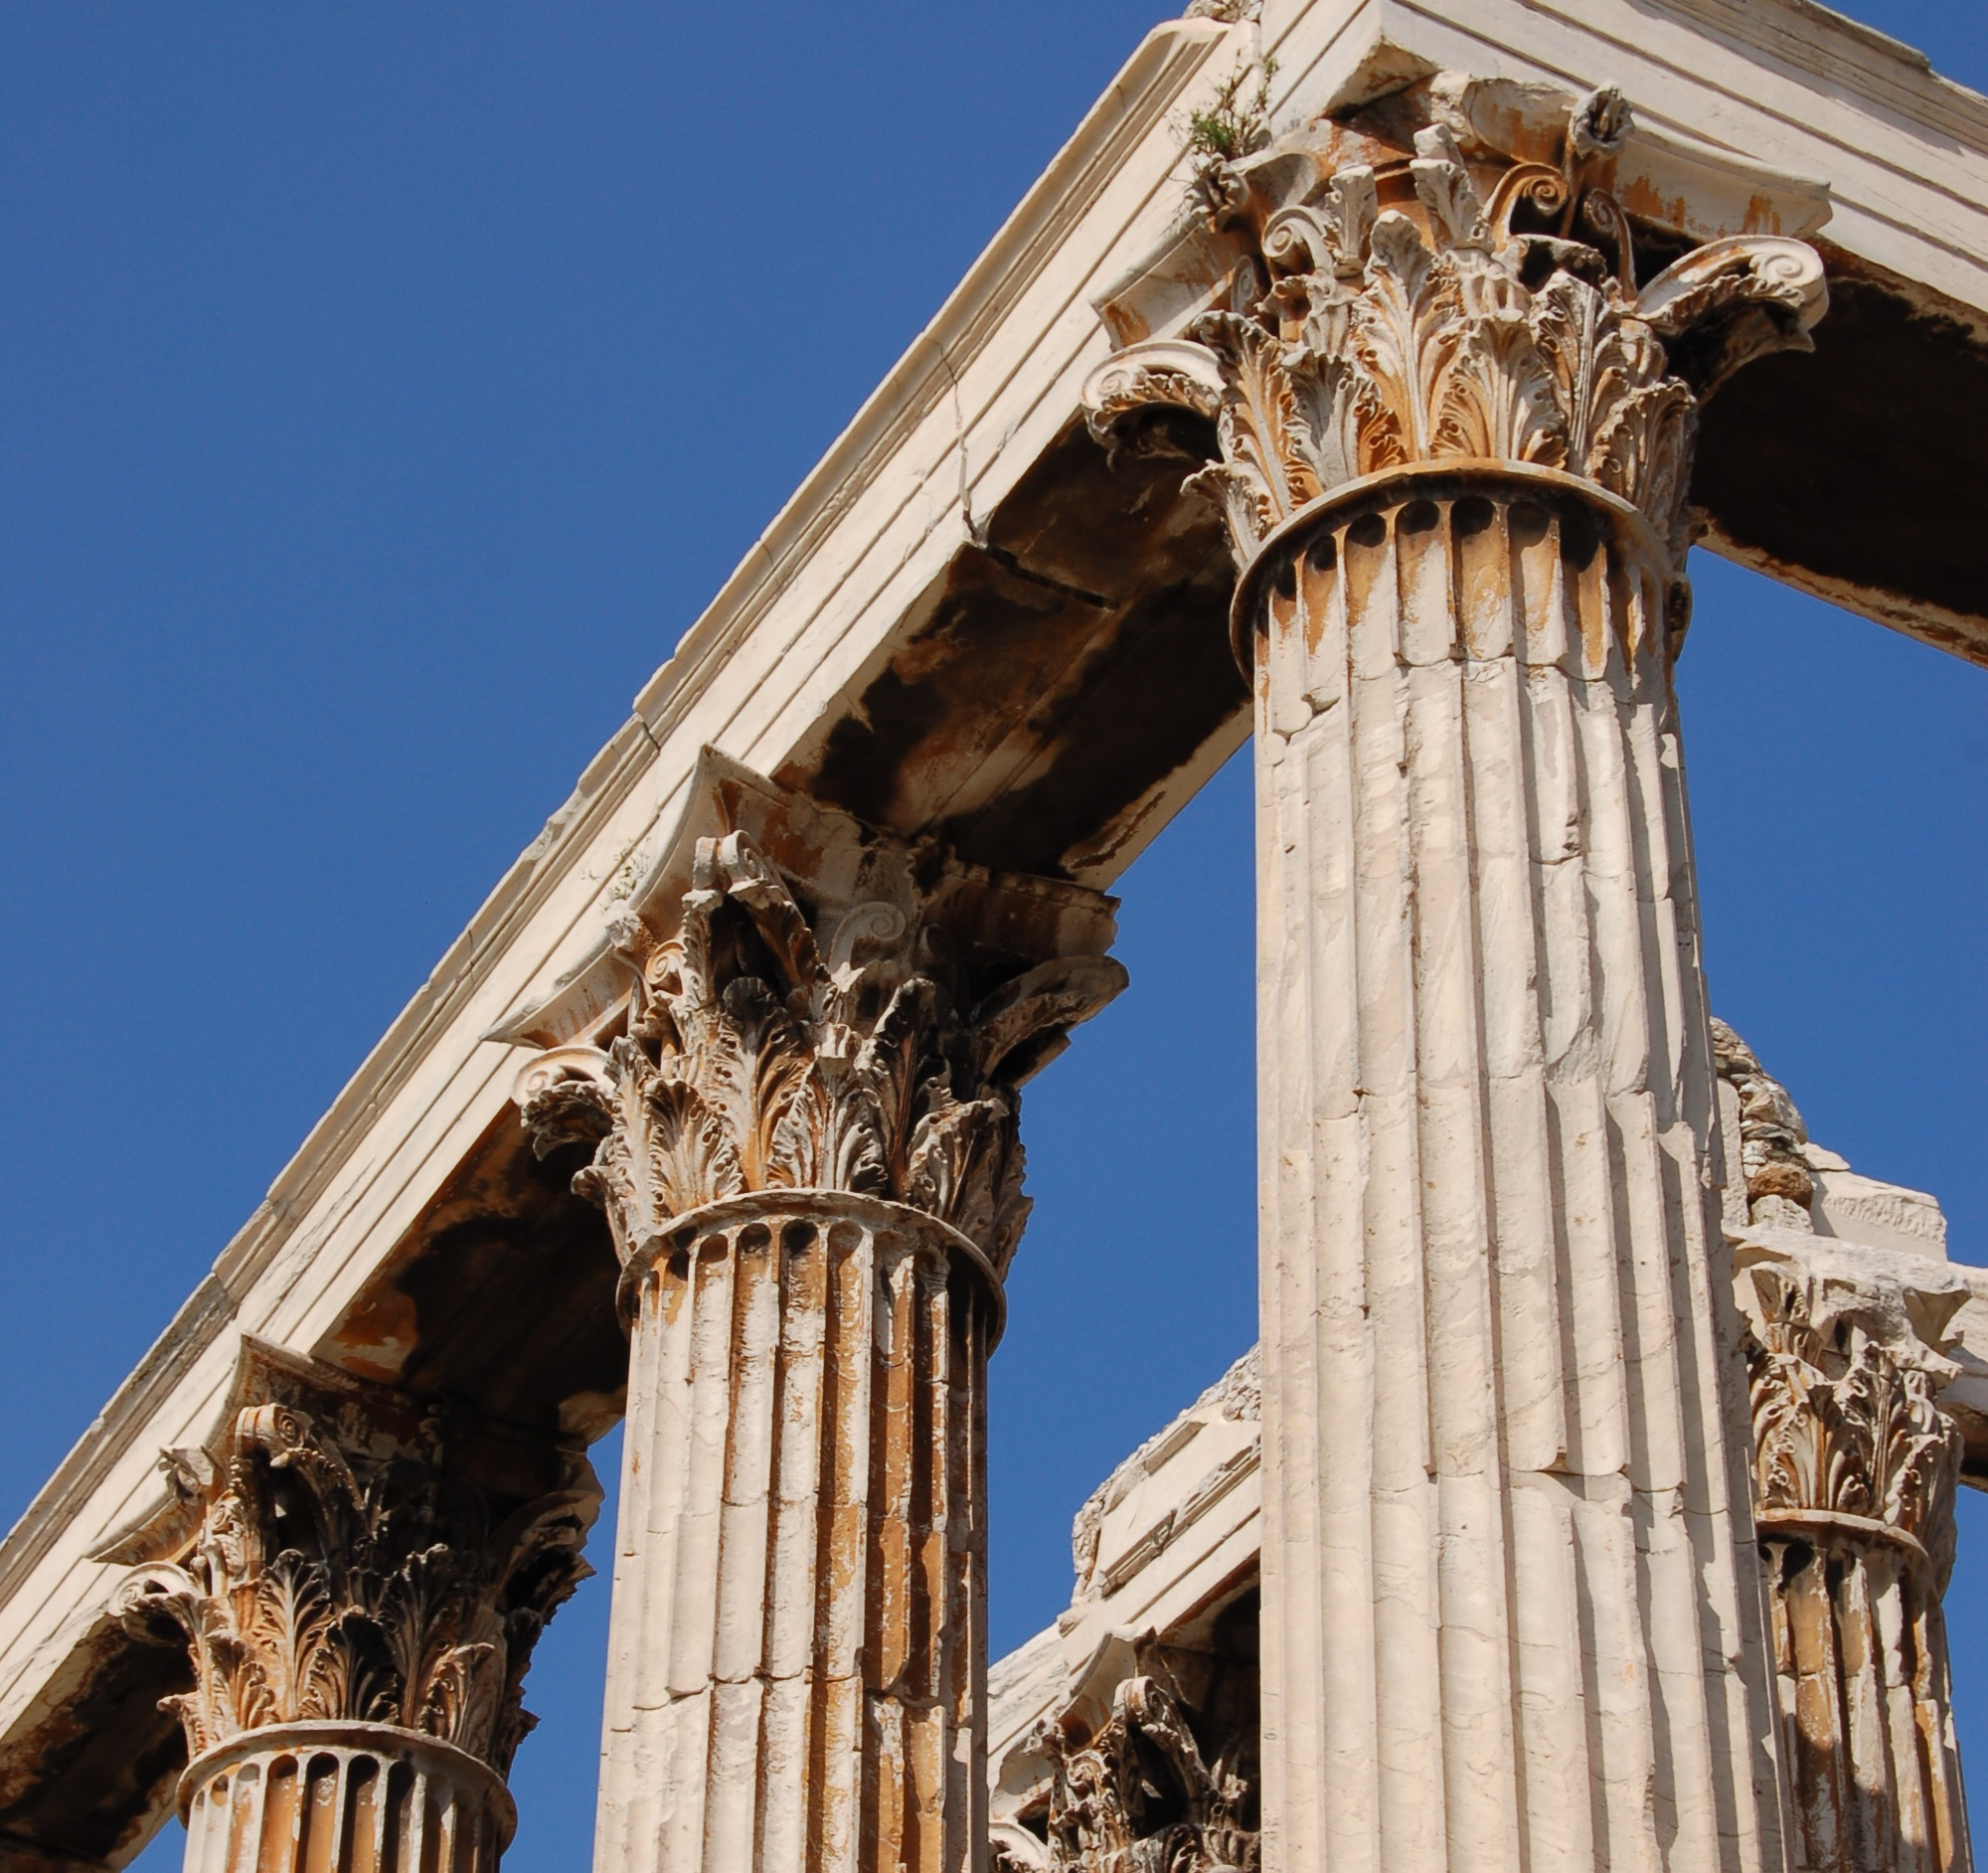 File:Columns in details on the Temple of Olympian Zeus.jpg